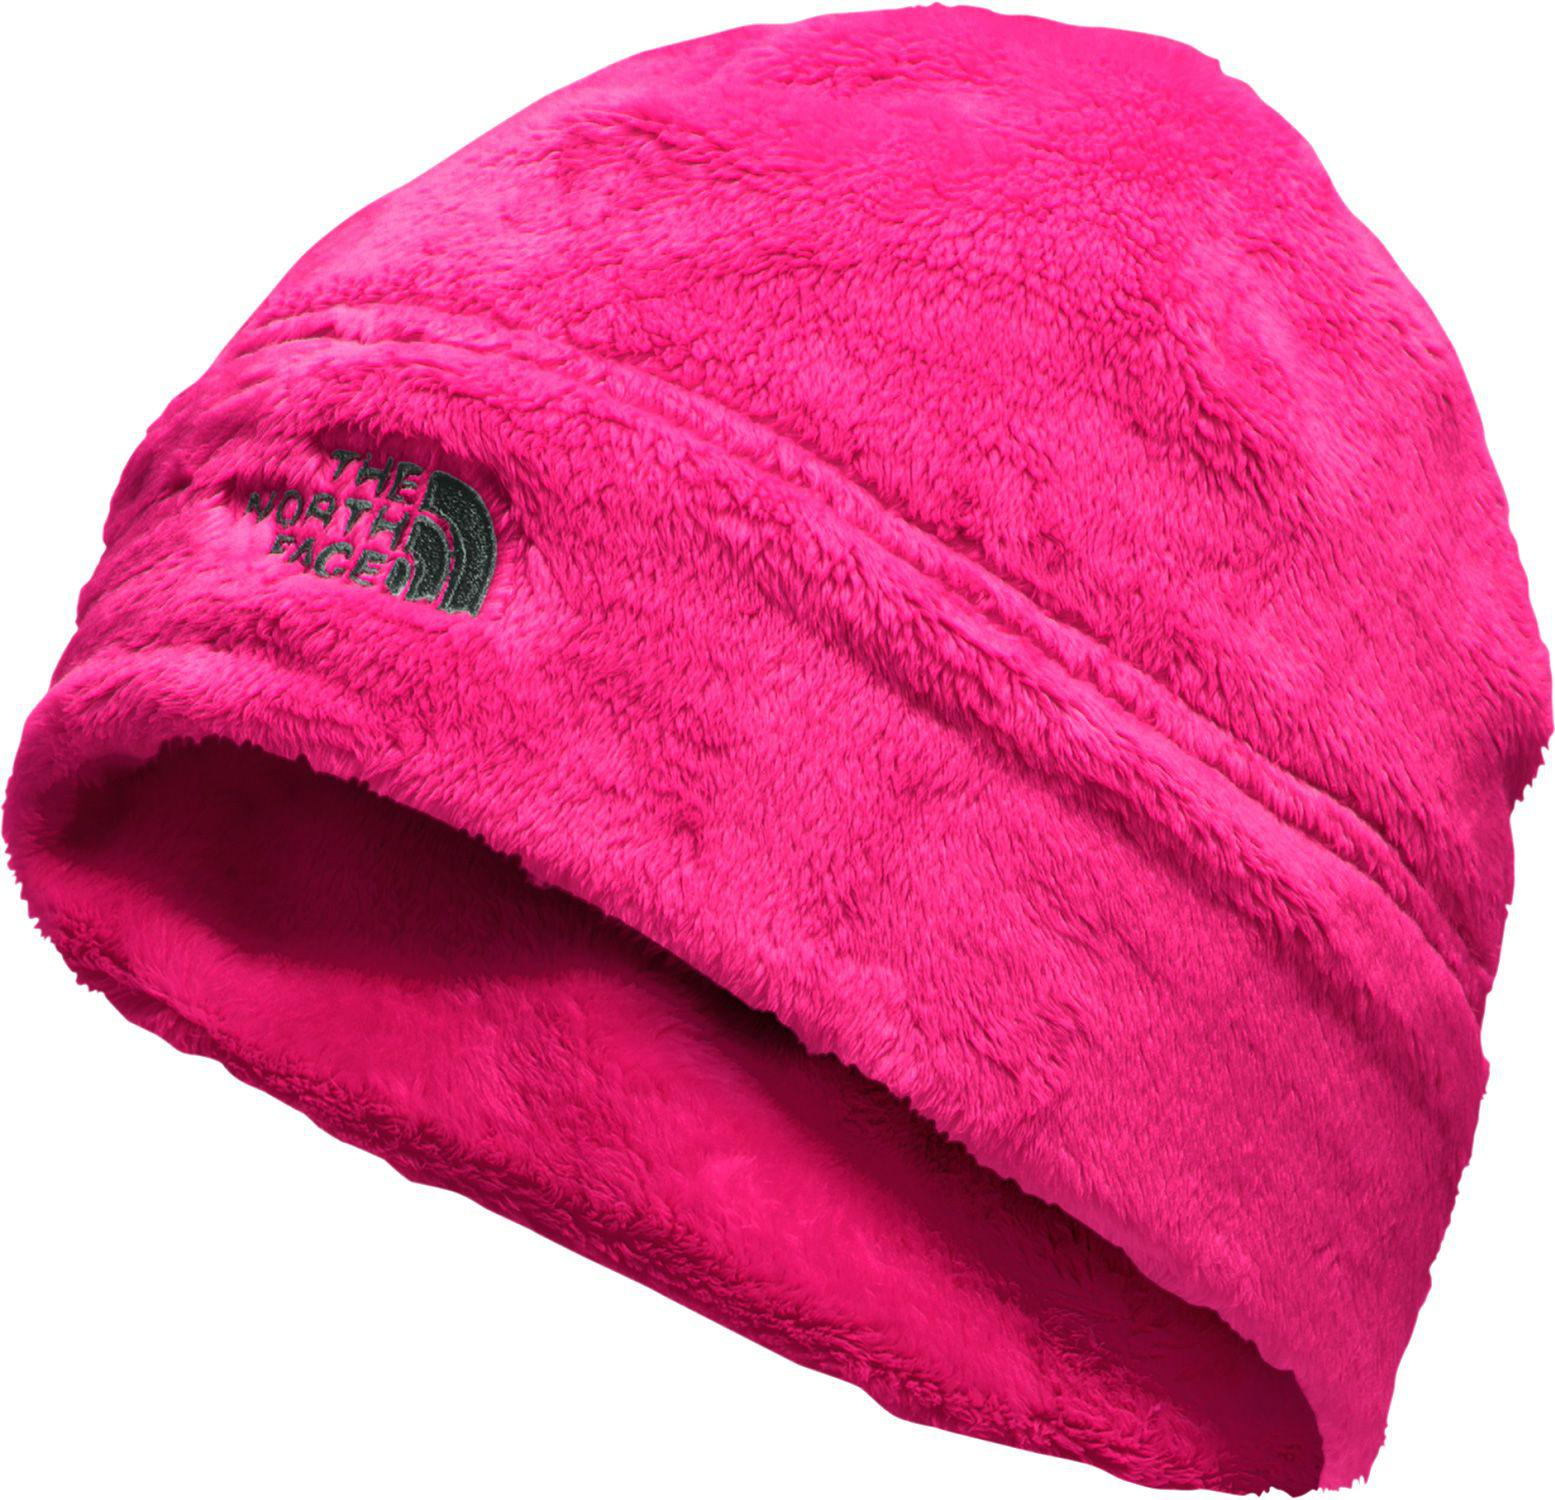 8aa442f842c View fullscreen · The North Face - Pink  denali  Thermal Fleece Beanie -  Lyst